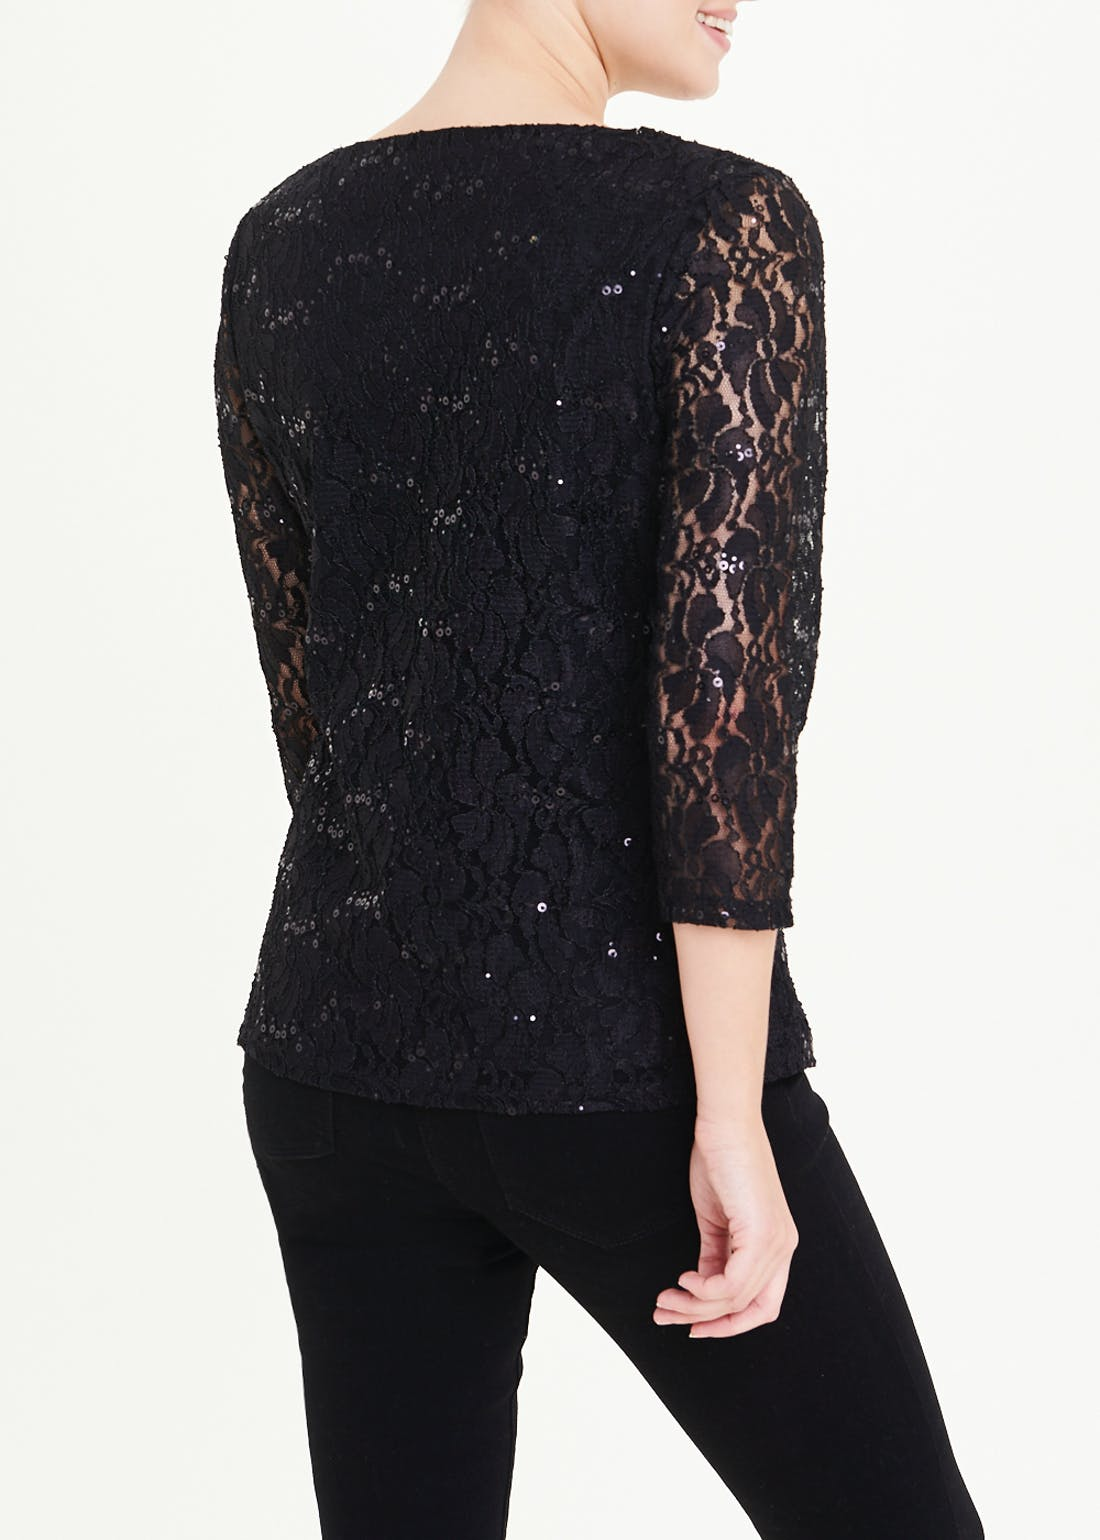 Papaya Classic Black Sequin Lace Top